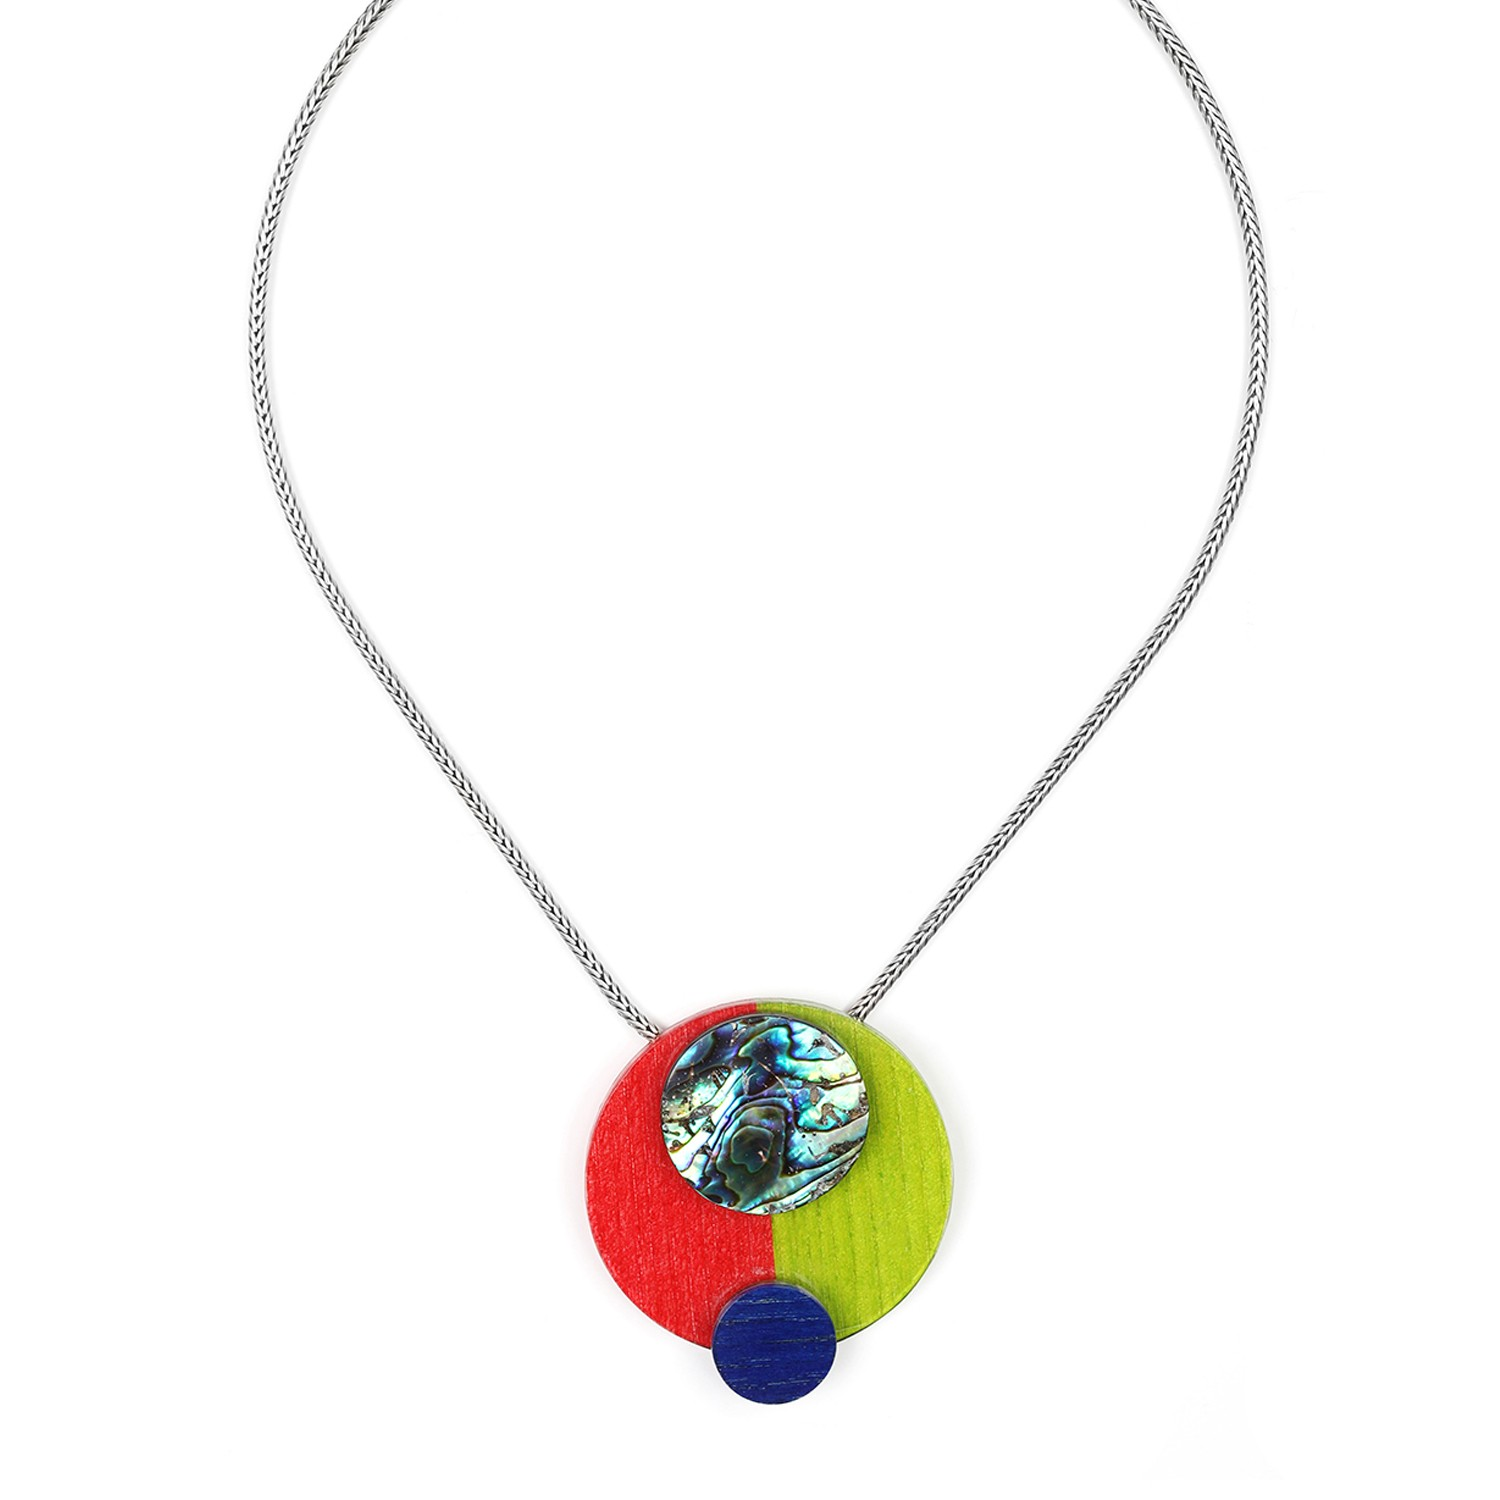 COLOR BLOC necklace